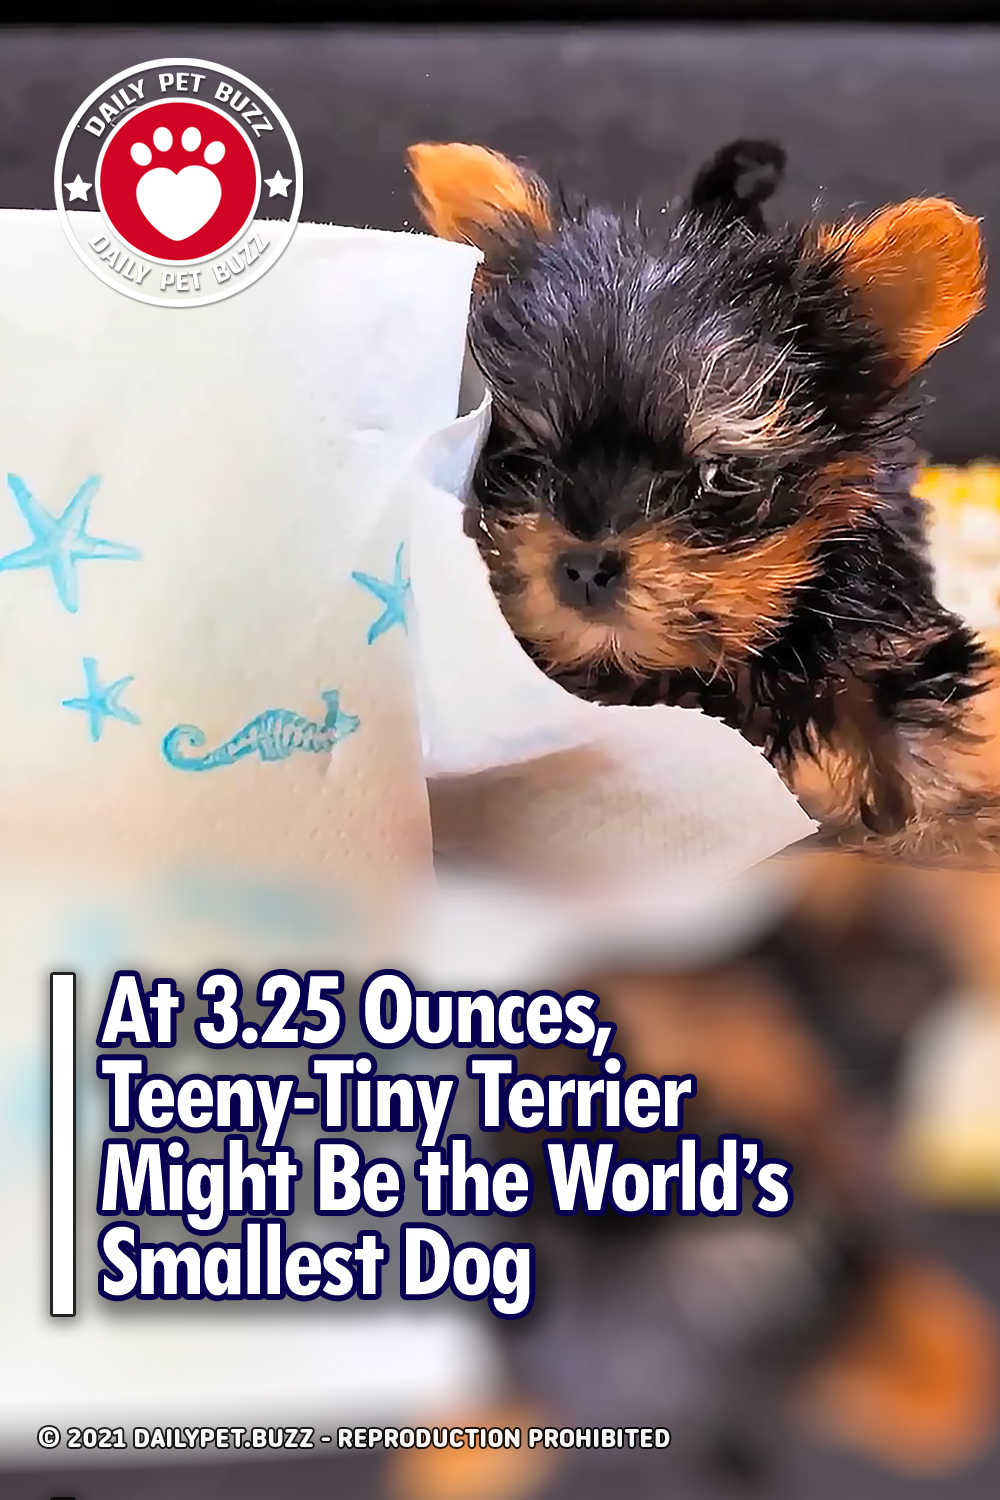 At 3.25 Ounces, Teeny-Tiny Terrier Might Be the World's Smallest Dog